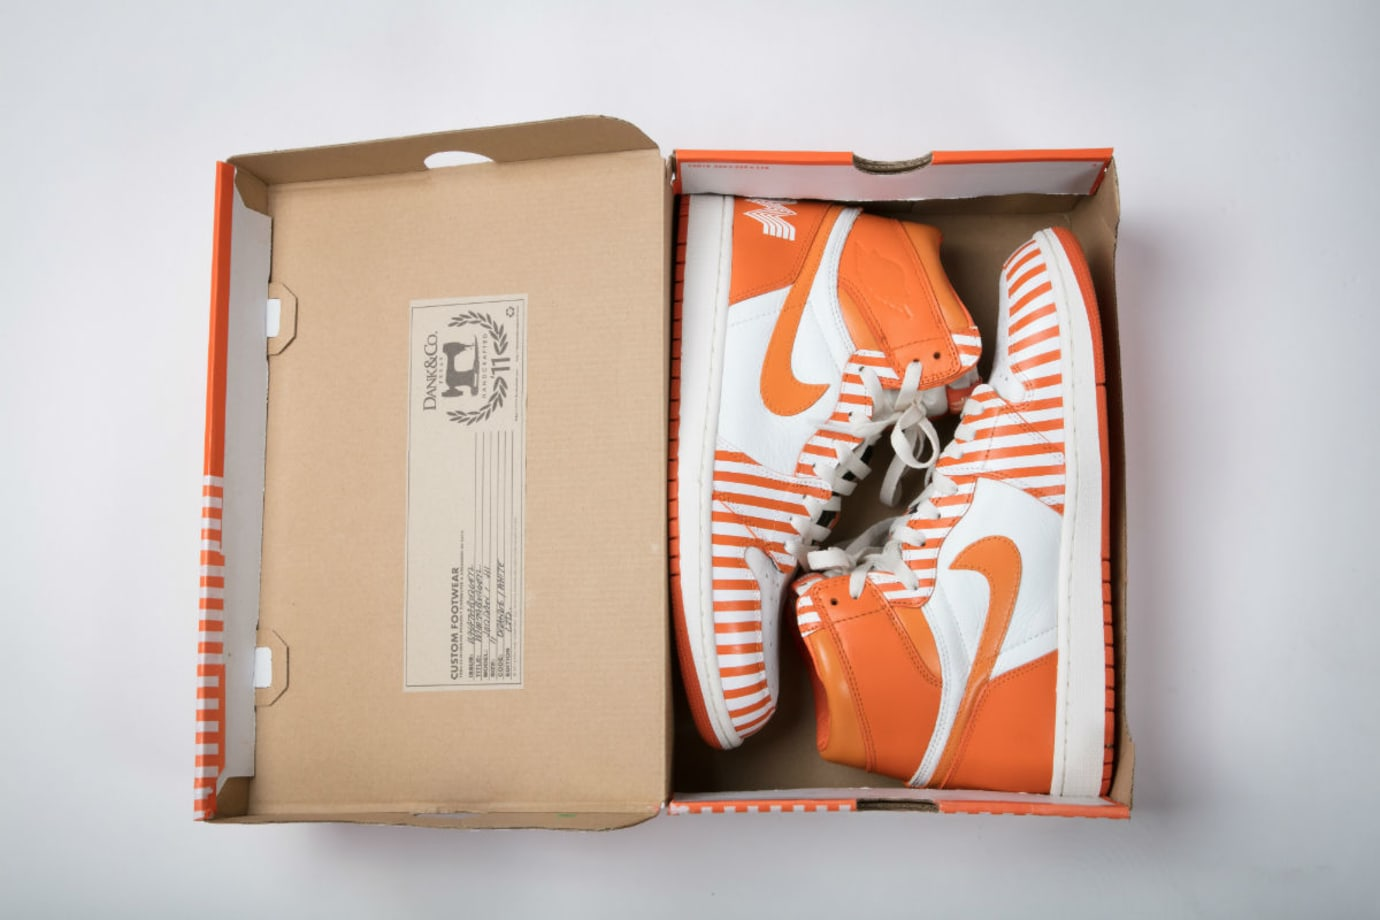 Whataburger Air Jordan 1 Box